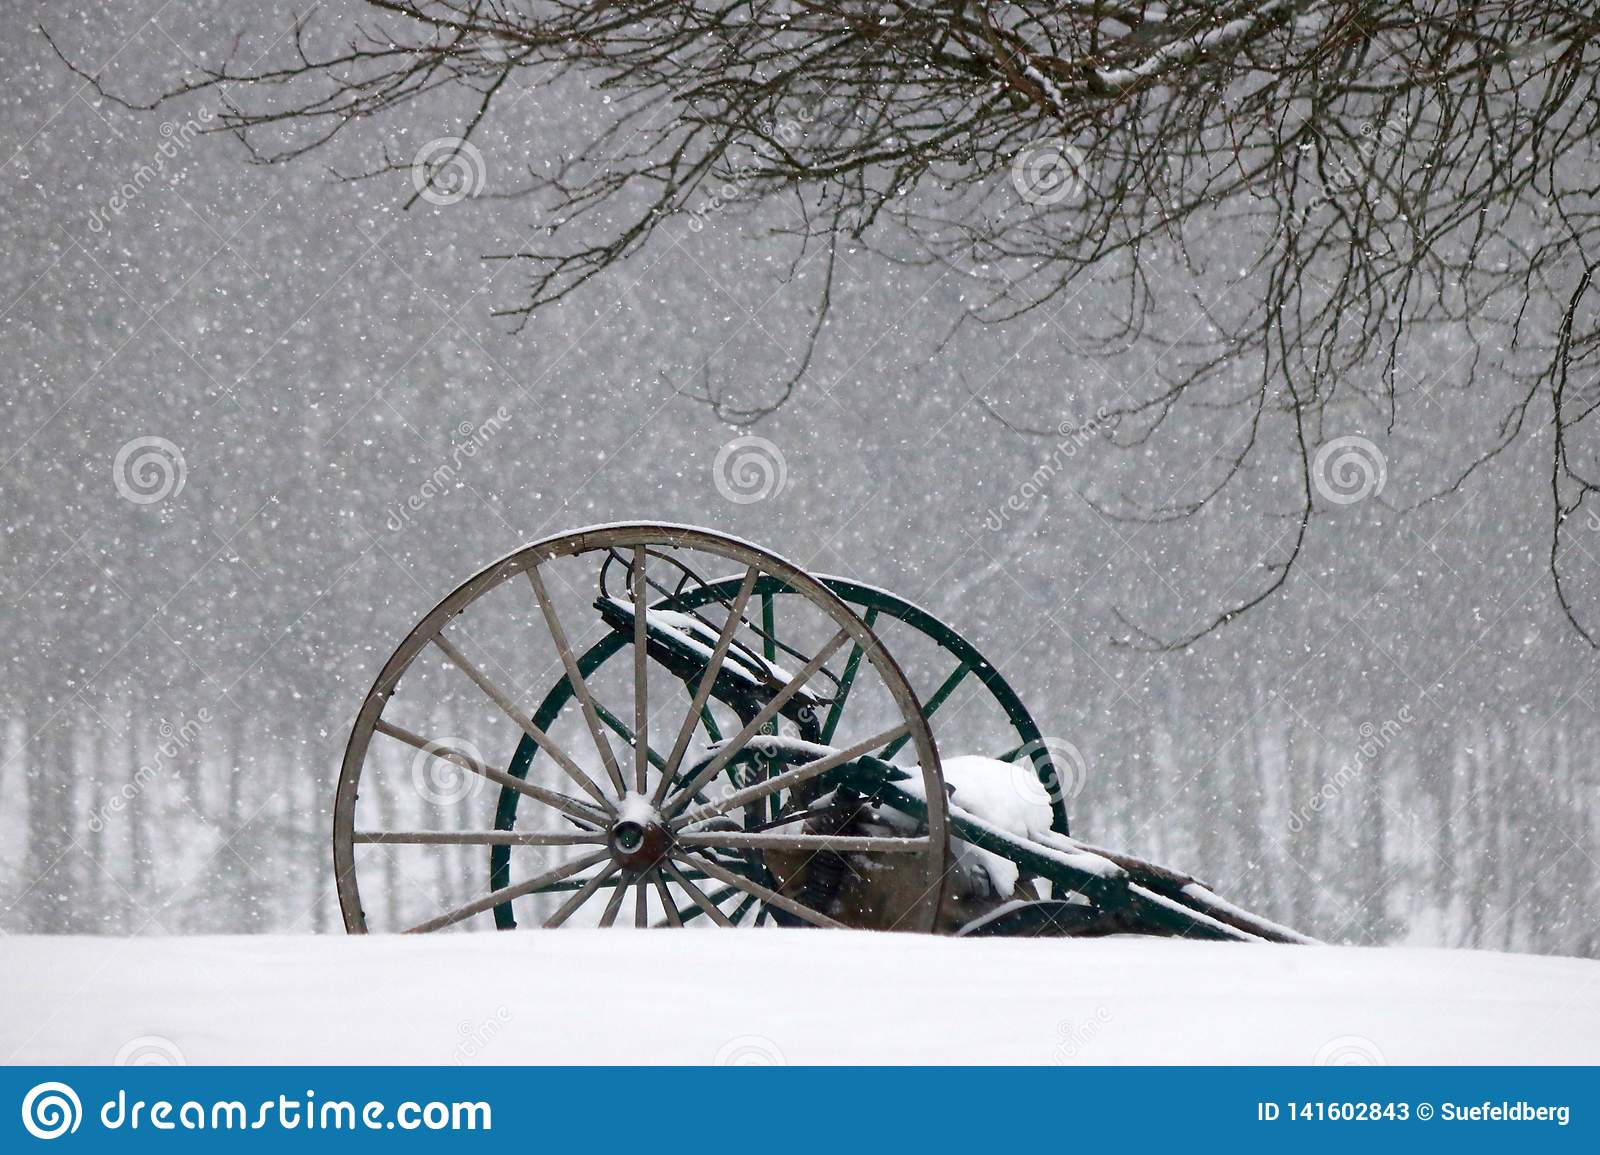 Farm Machinery in the Snow